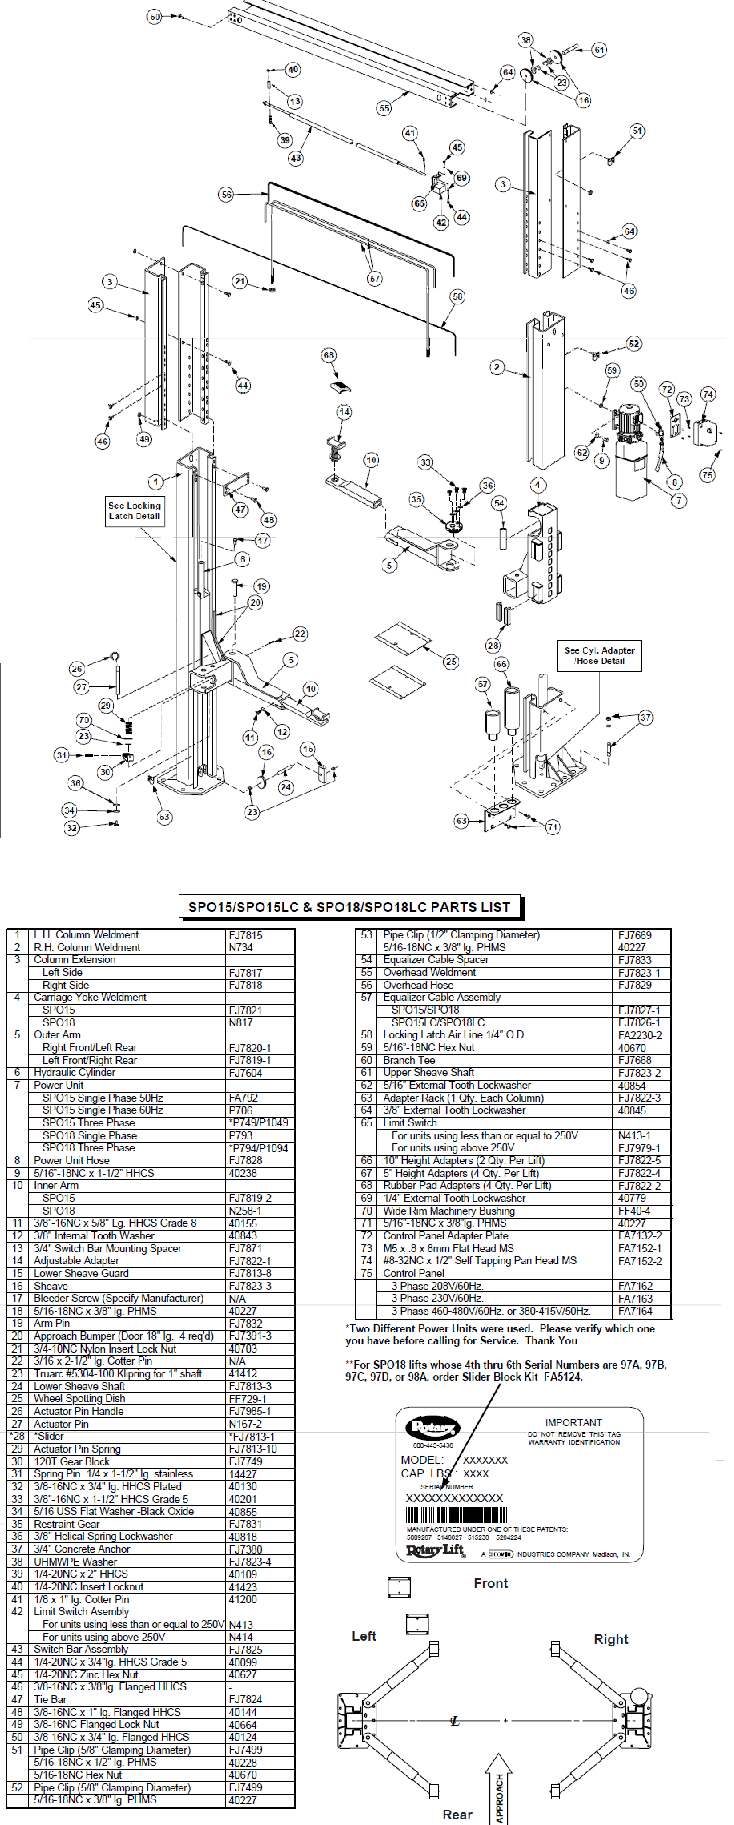 Rotary Lift Replacement Parts : Rotary spo lc parts diagram